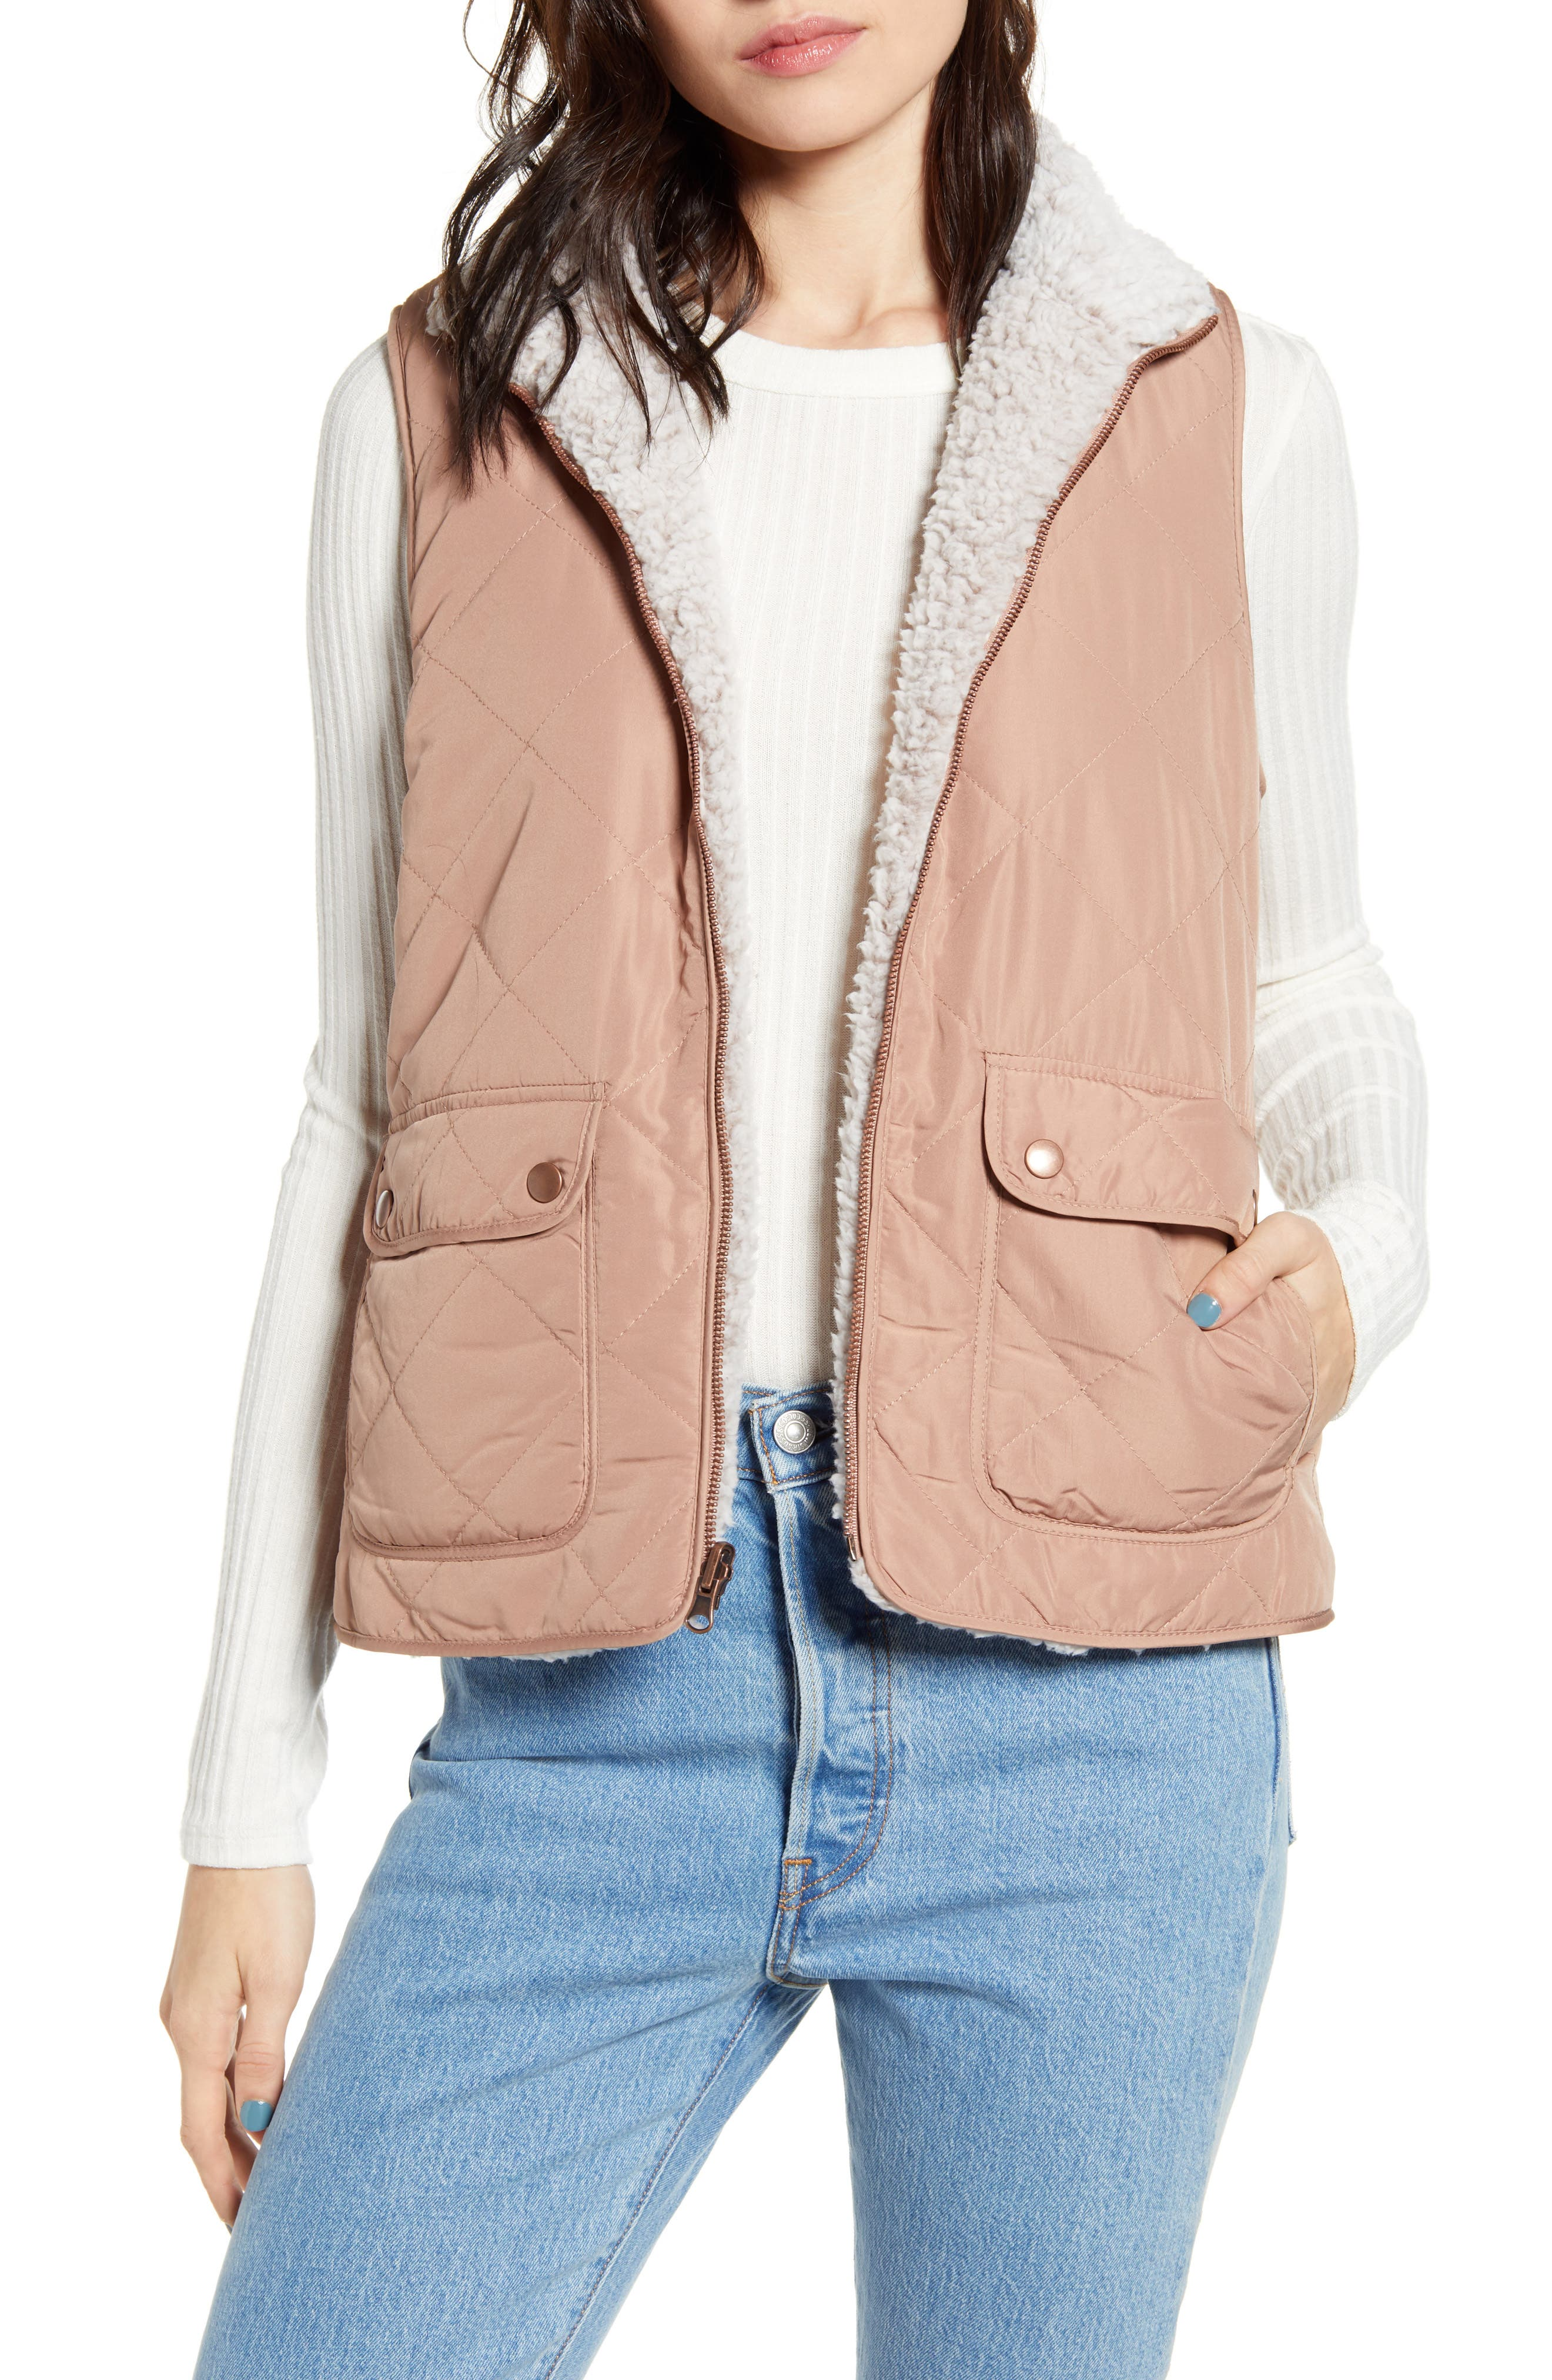 Thread & Supply Wubby Reversible Fleece Lined Quilted Vest